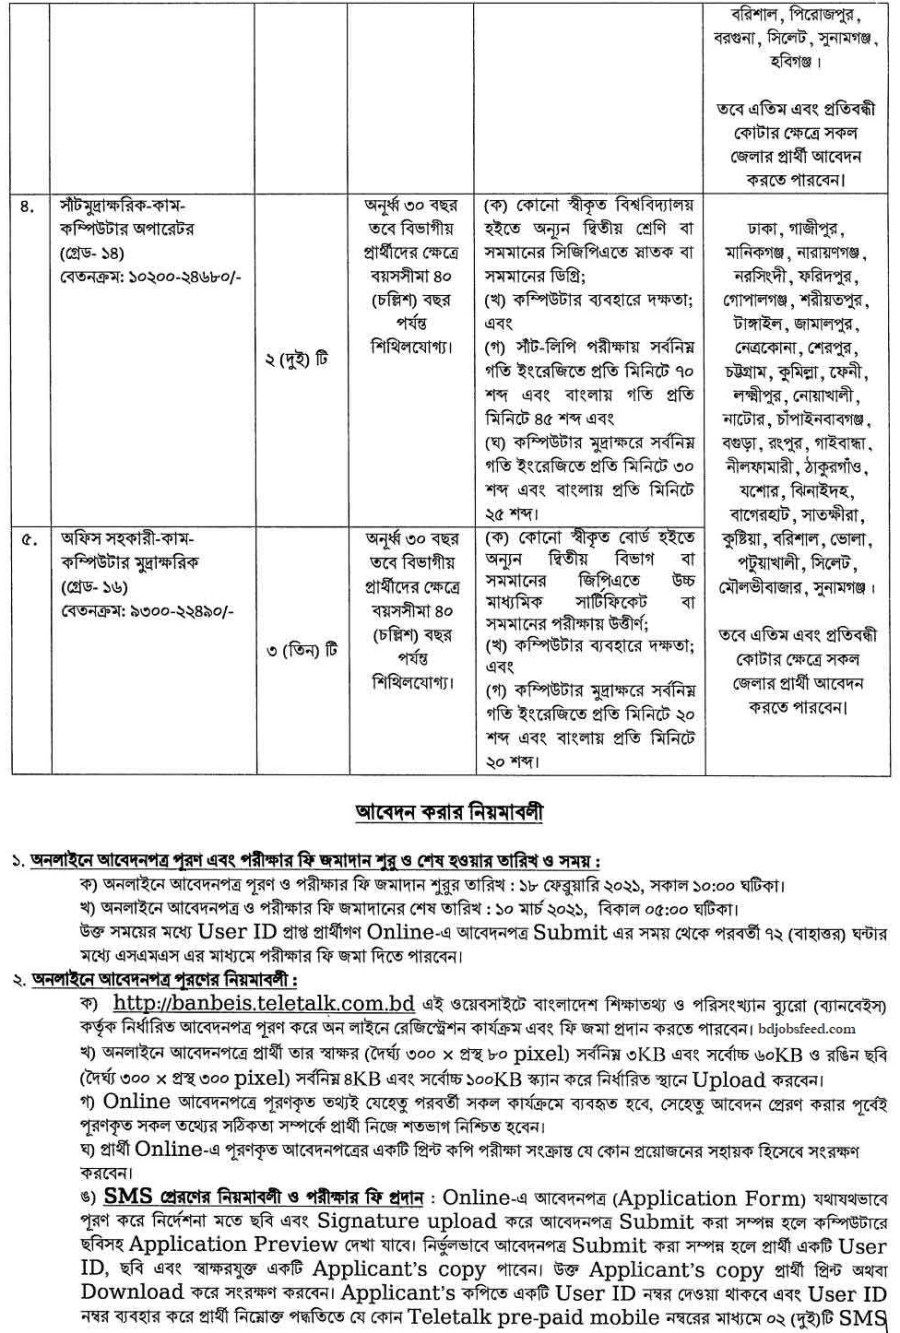 BANBEIS Official Job Circular 10 March 2021 Image